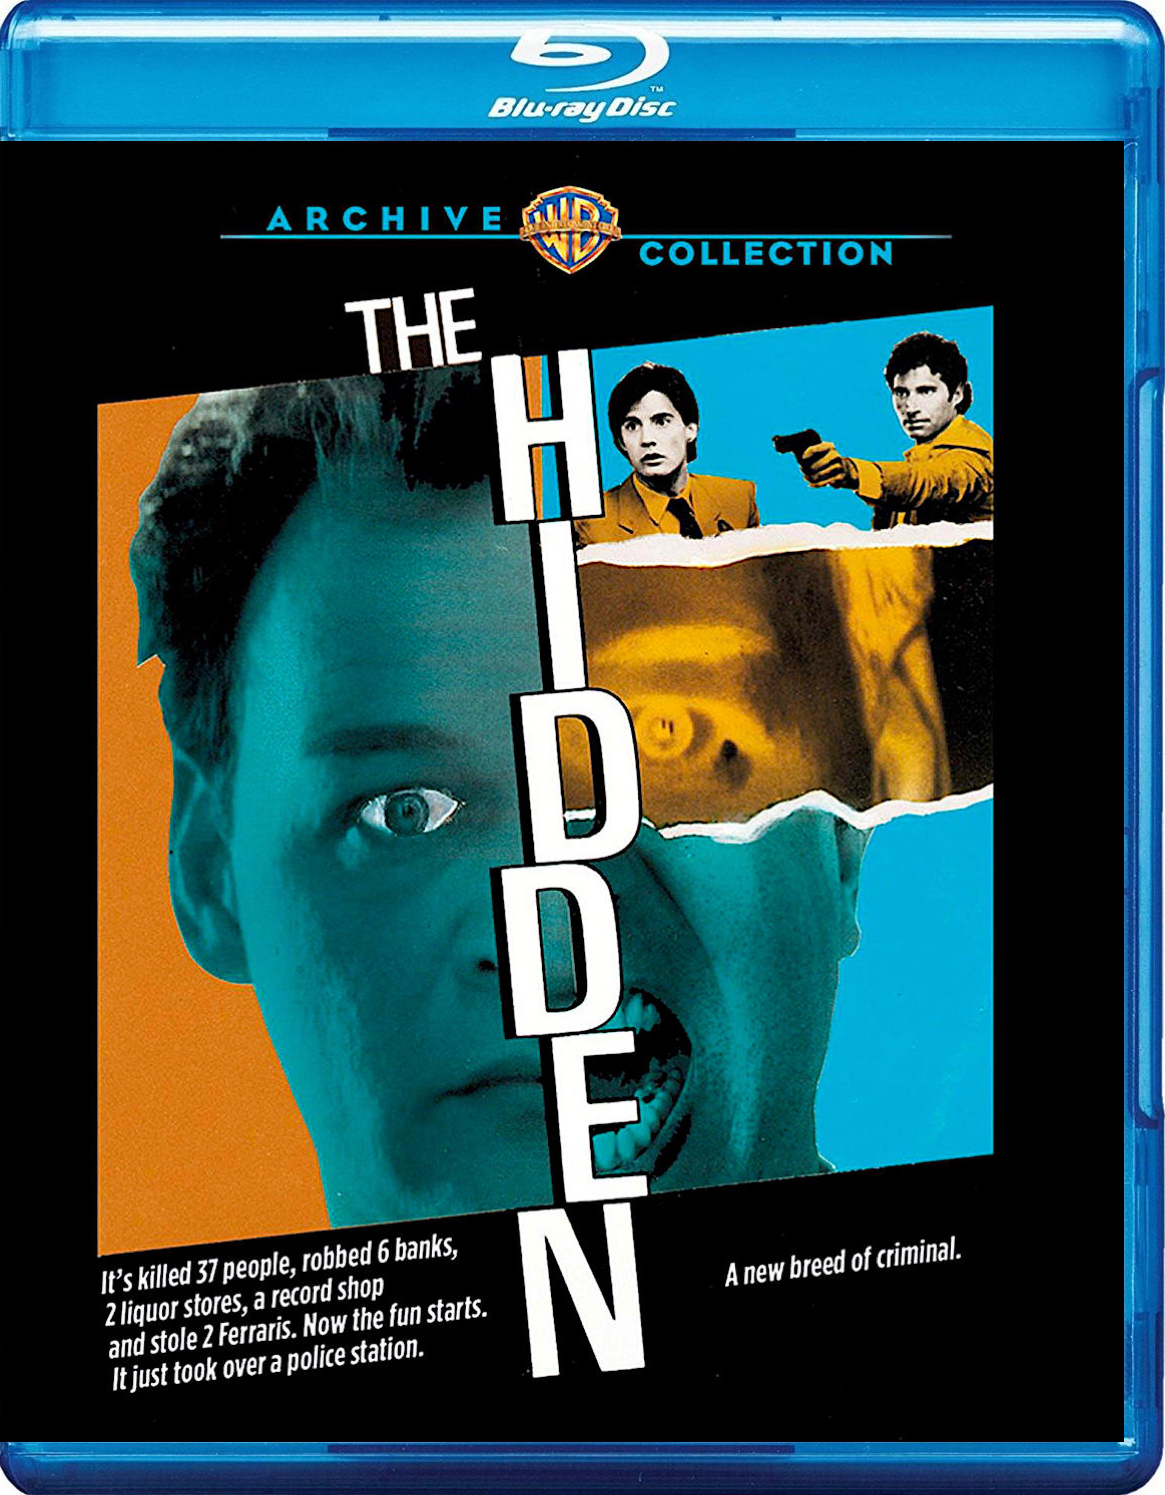 Blu-Ray And Dvd Covers Warner Brothers Archive Blu-Rays -1752